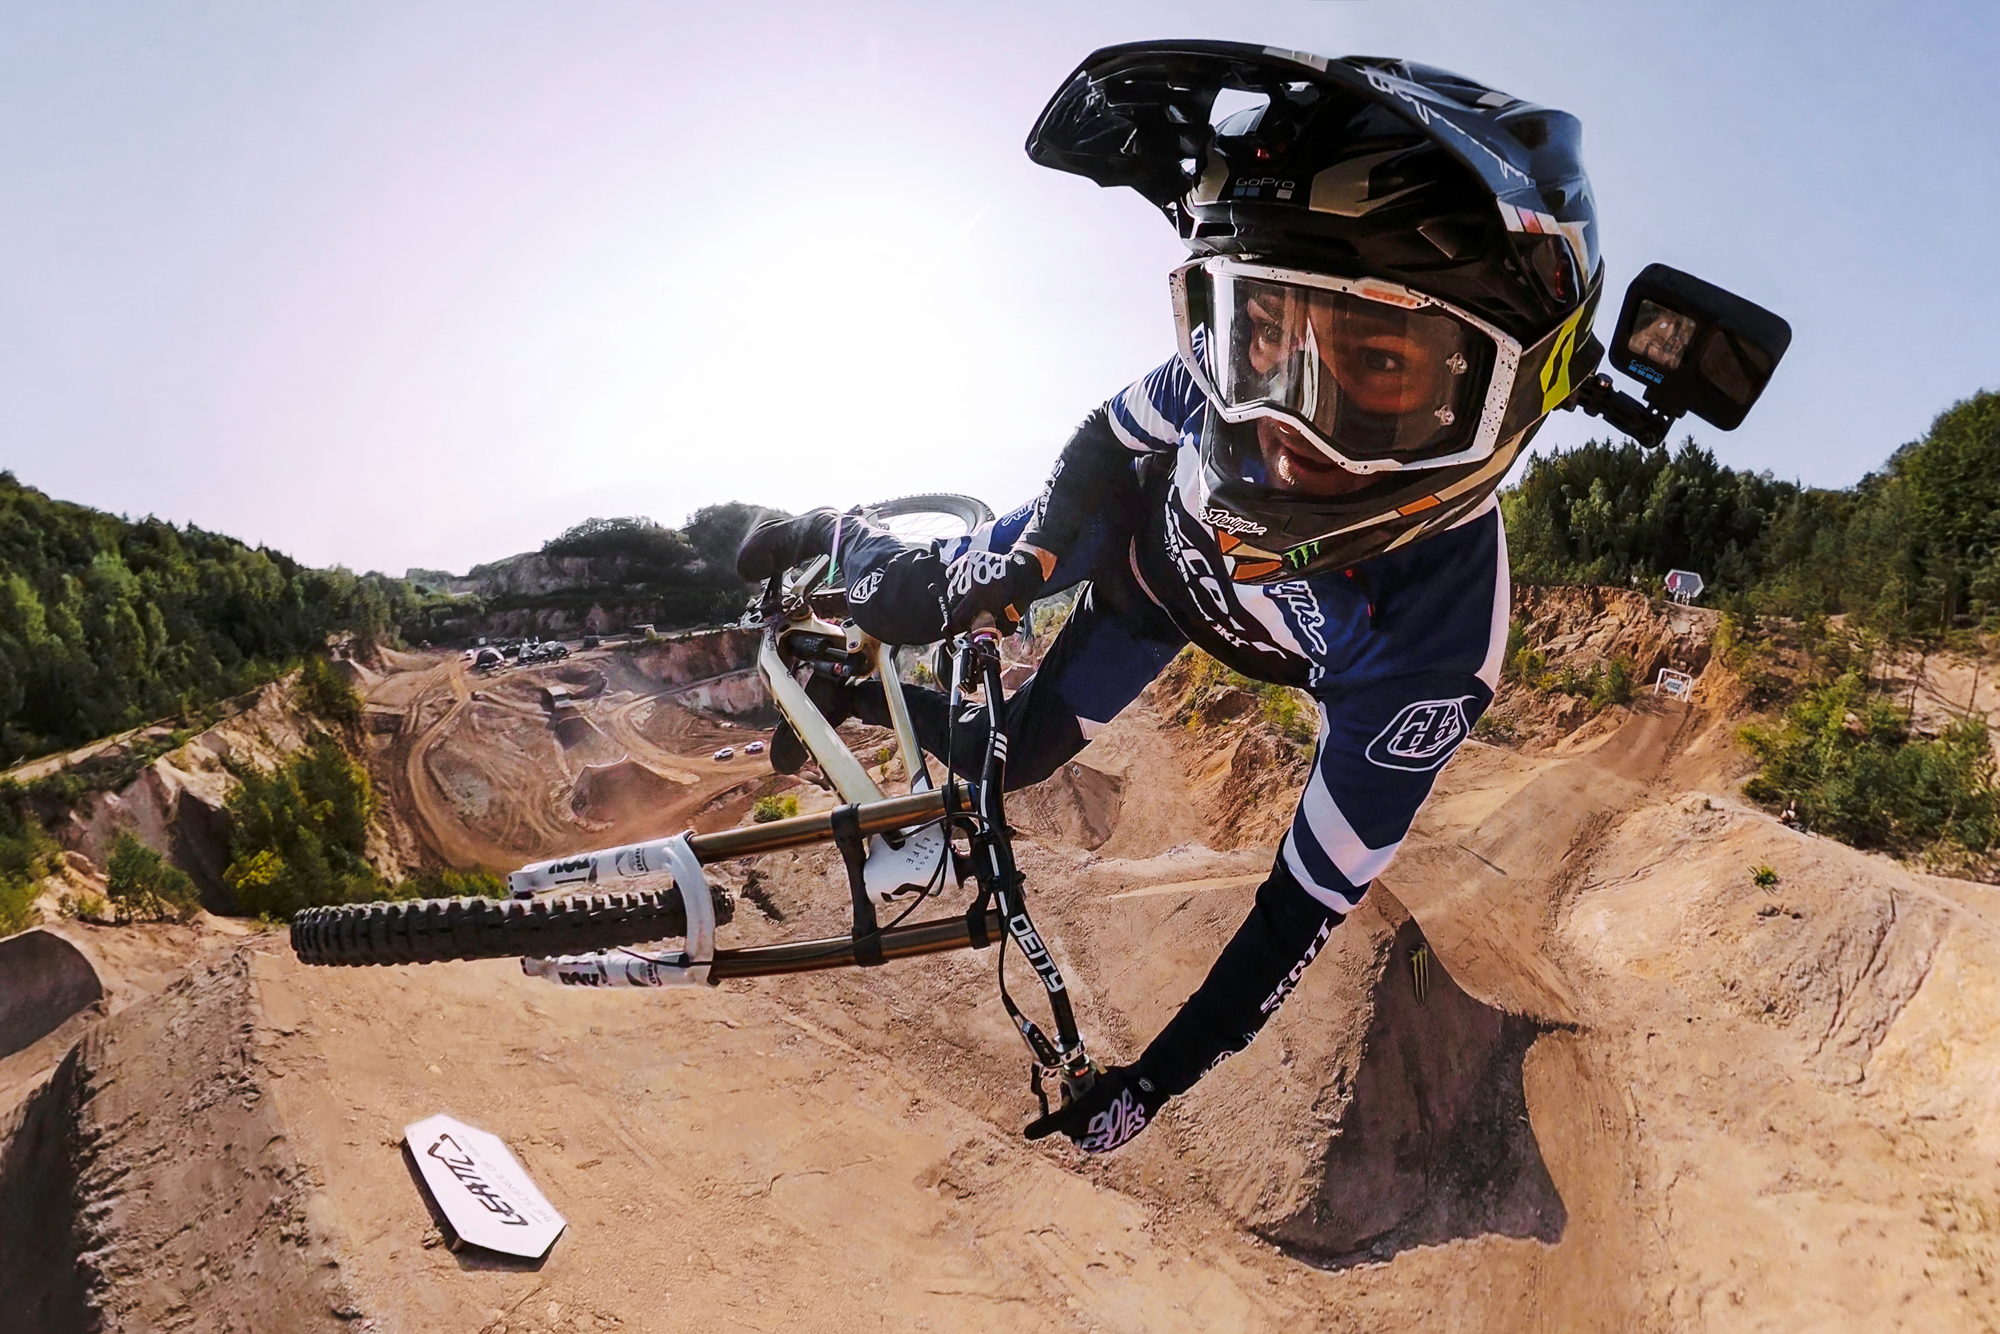 Dirt biker tail whipping with GoPro HERO10 Black action camera